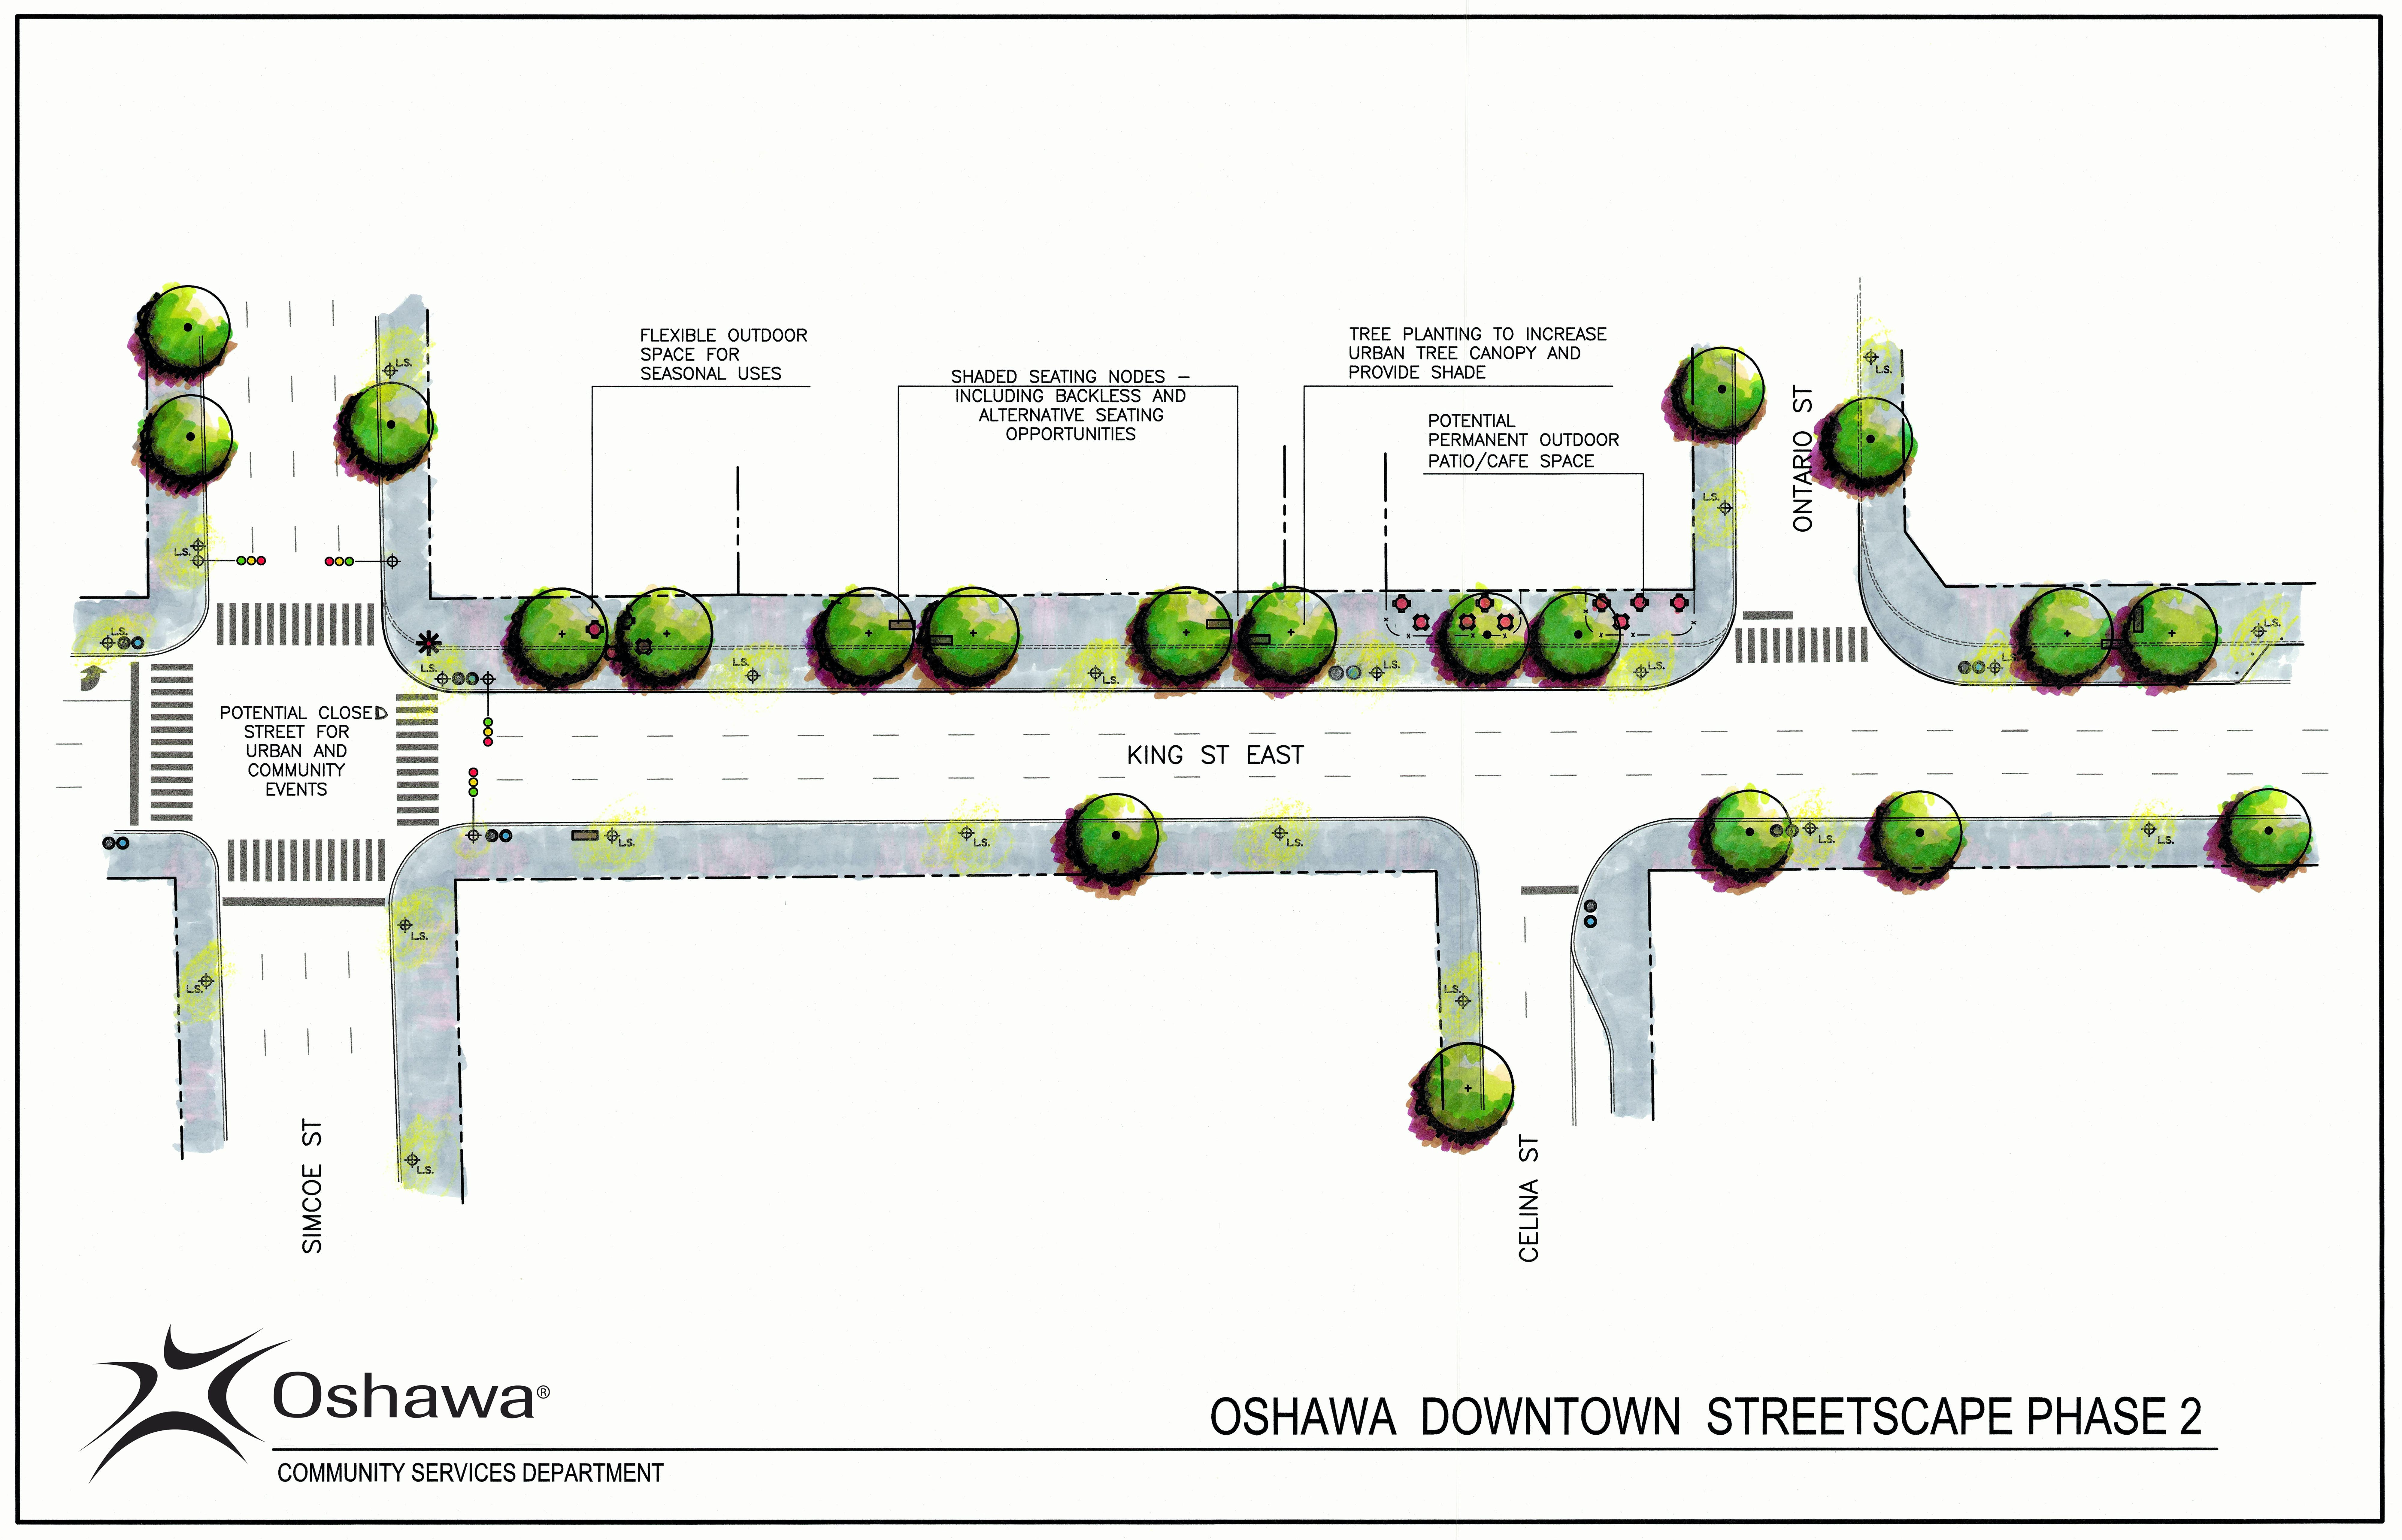 Streetscape-Concept-Plan-Phase-2